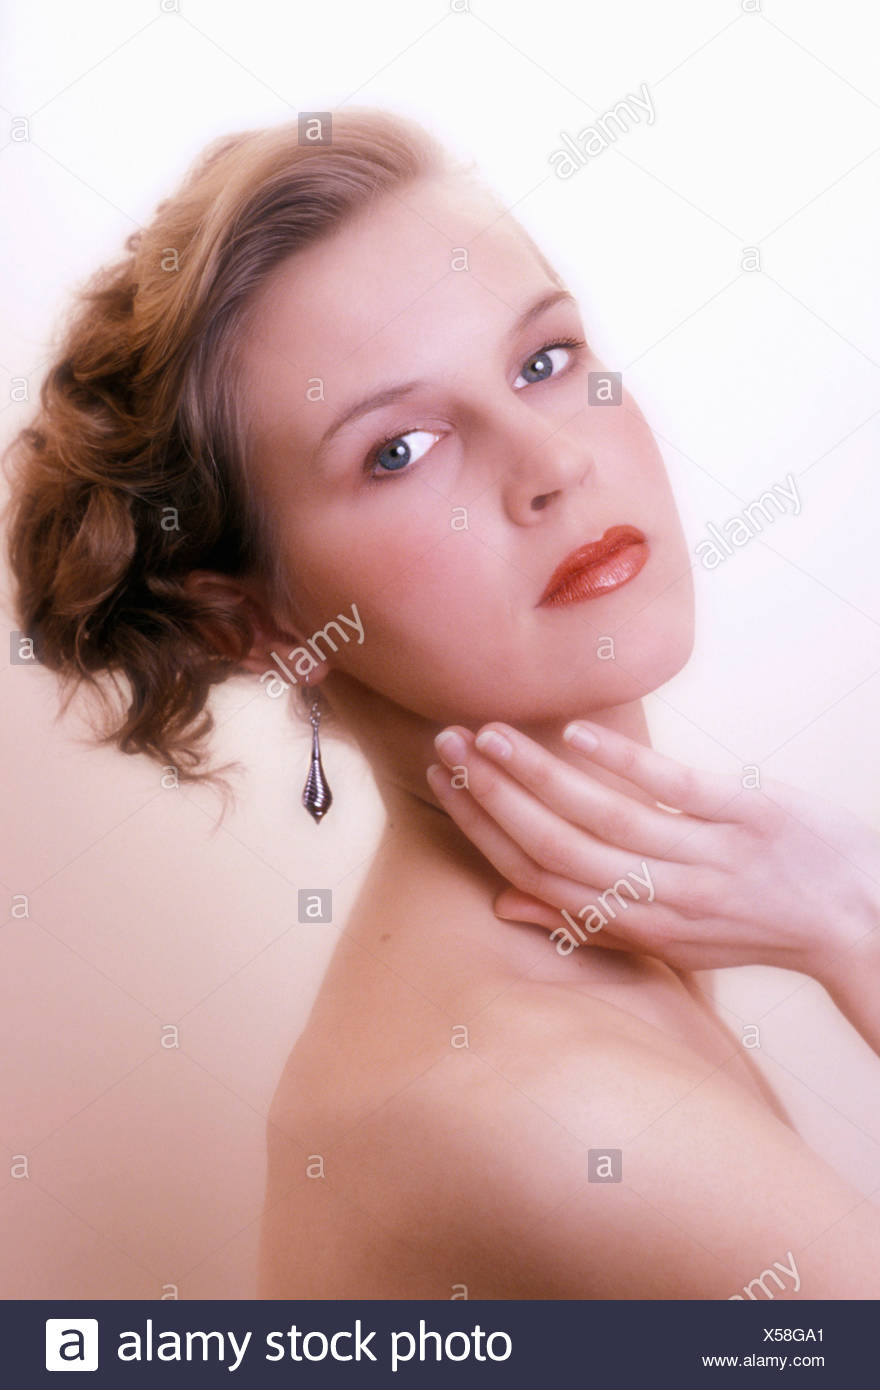 effect hair pinned up jewellery jewelry made up model released portrait pose posing soft focus studio wom - Stock Image